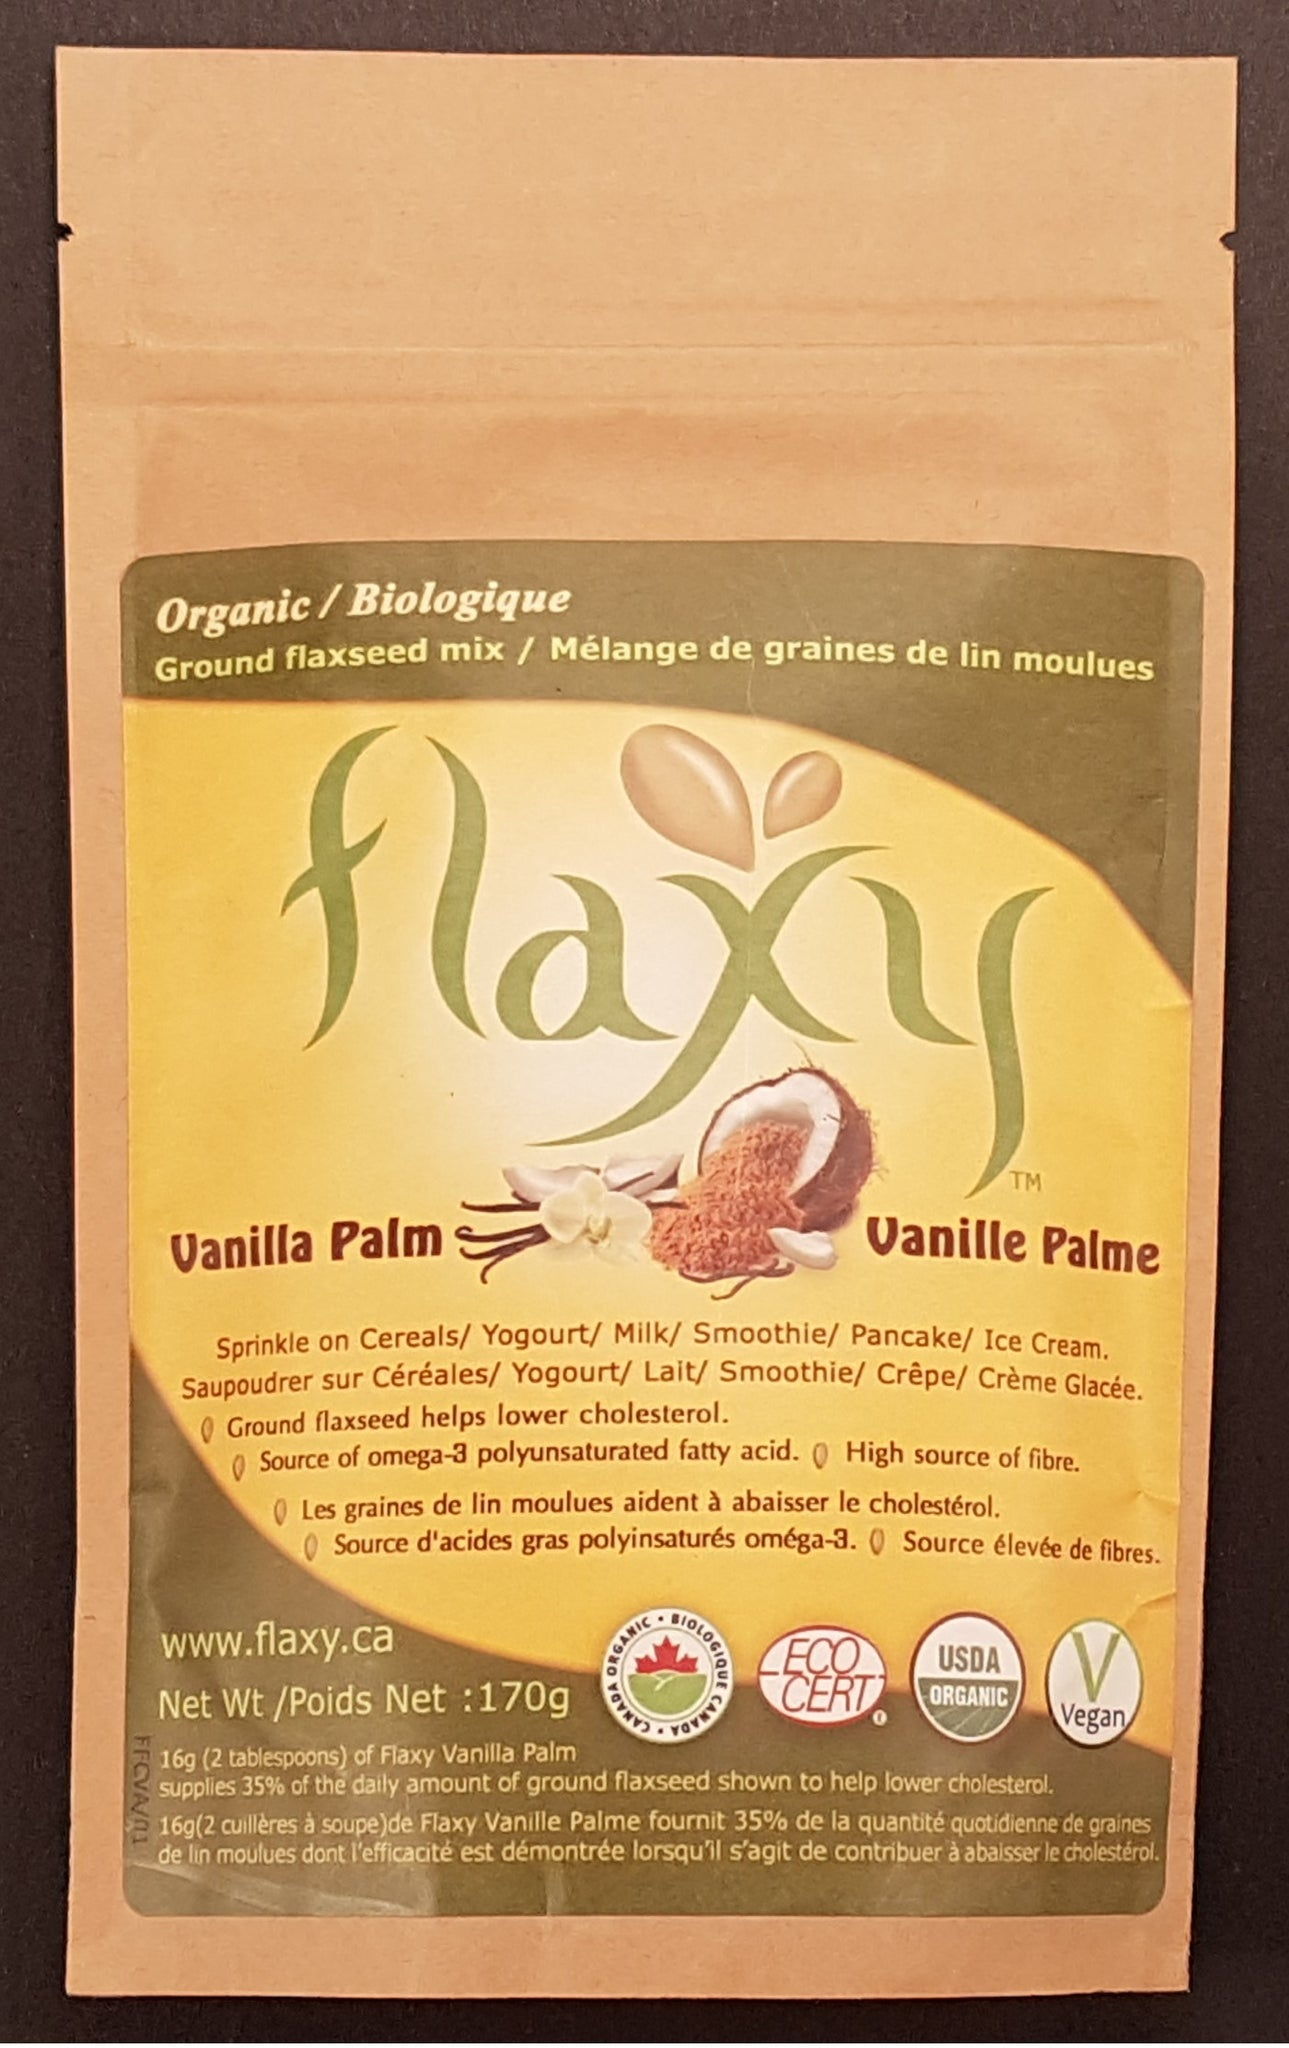 Flaxy - Vanilla Palm Organic - Flaxy